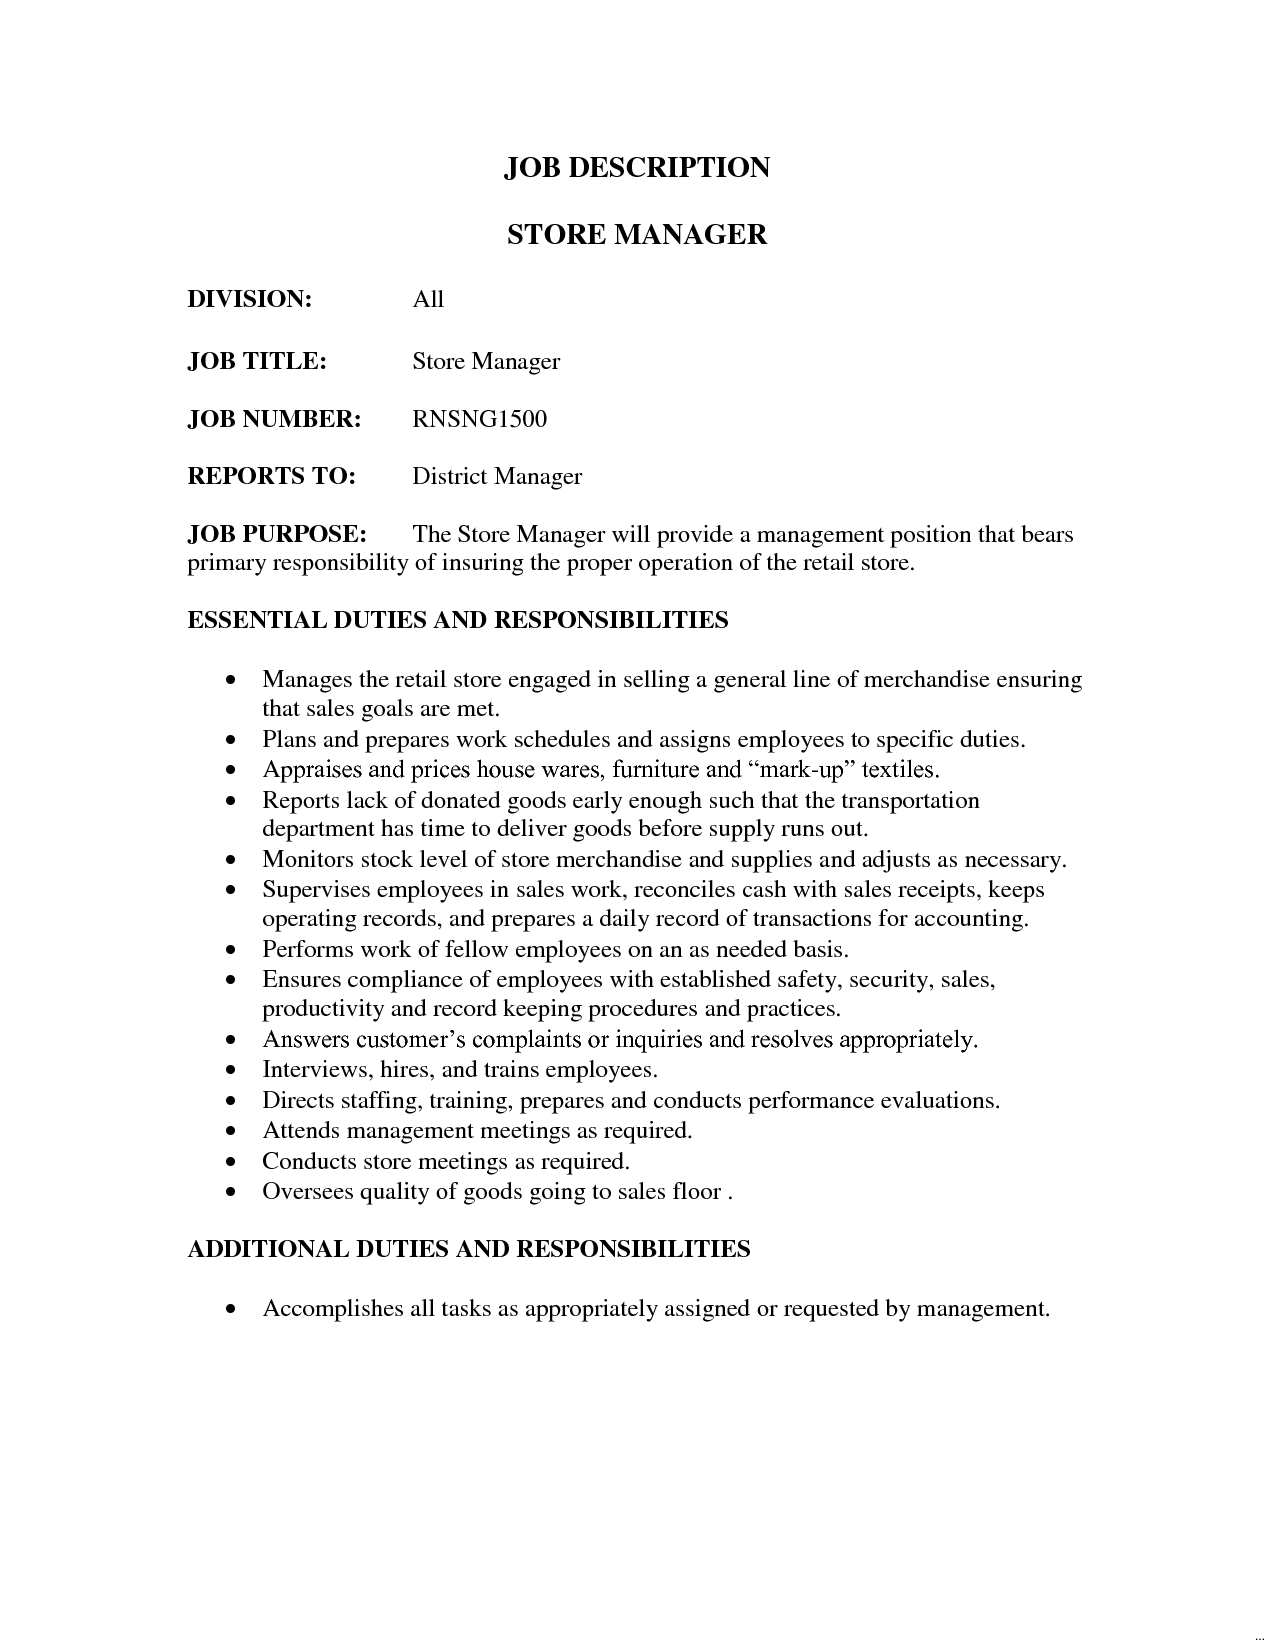 Resume Templates For Management Positions Retail Job Description Revolutionary Store Manager Sales Resume .